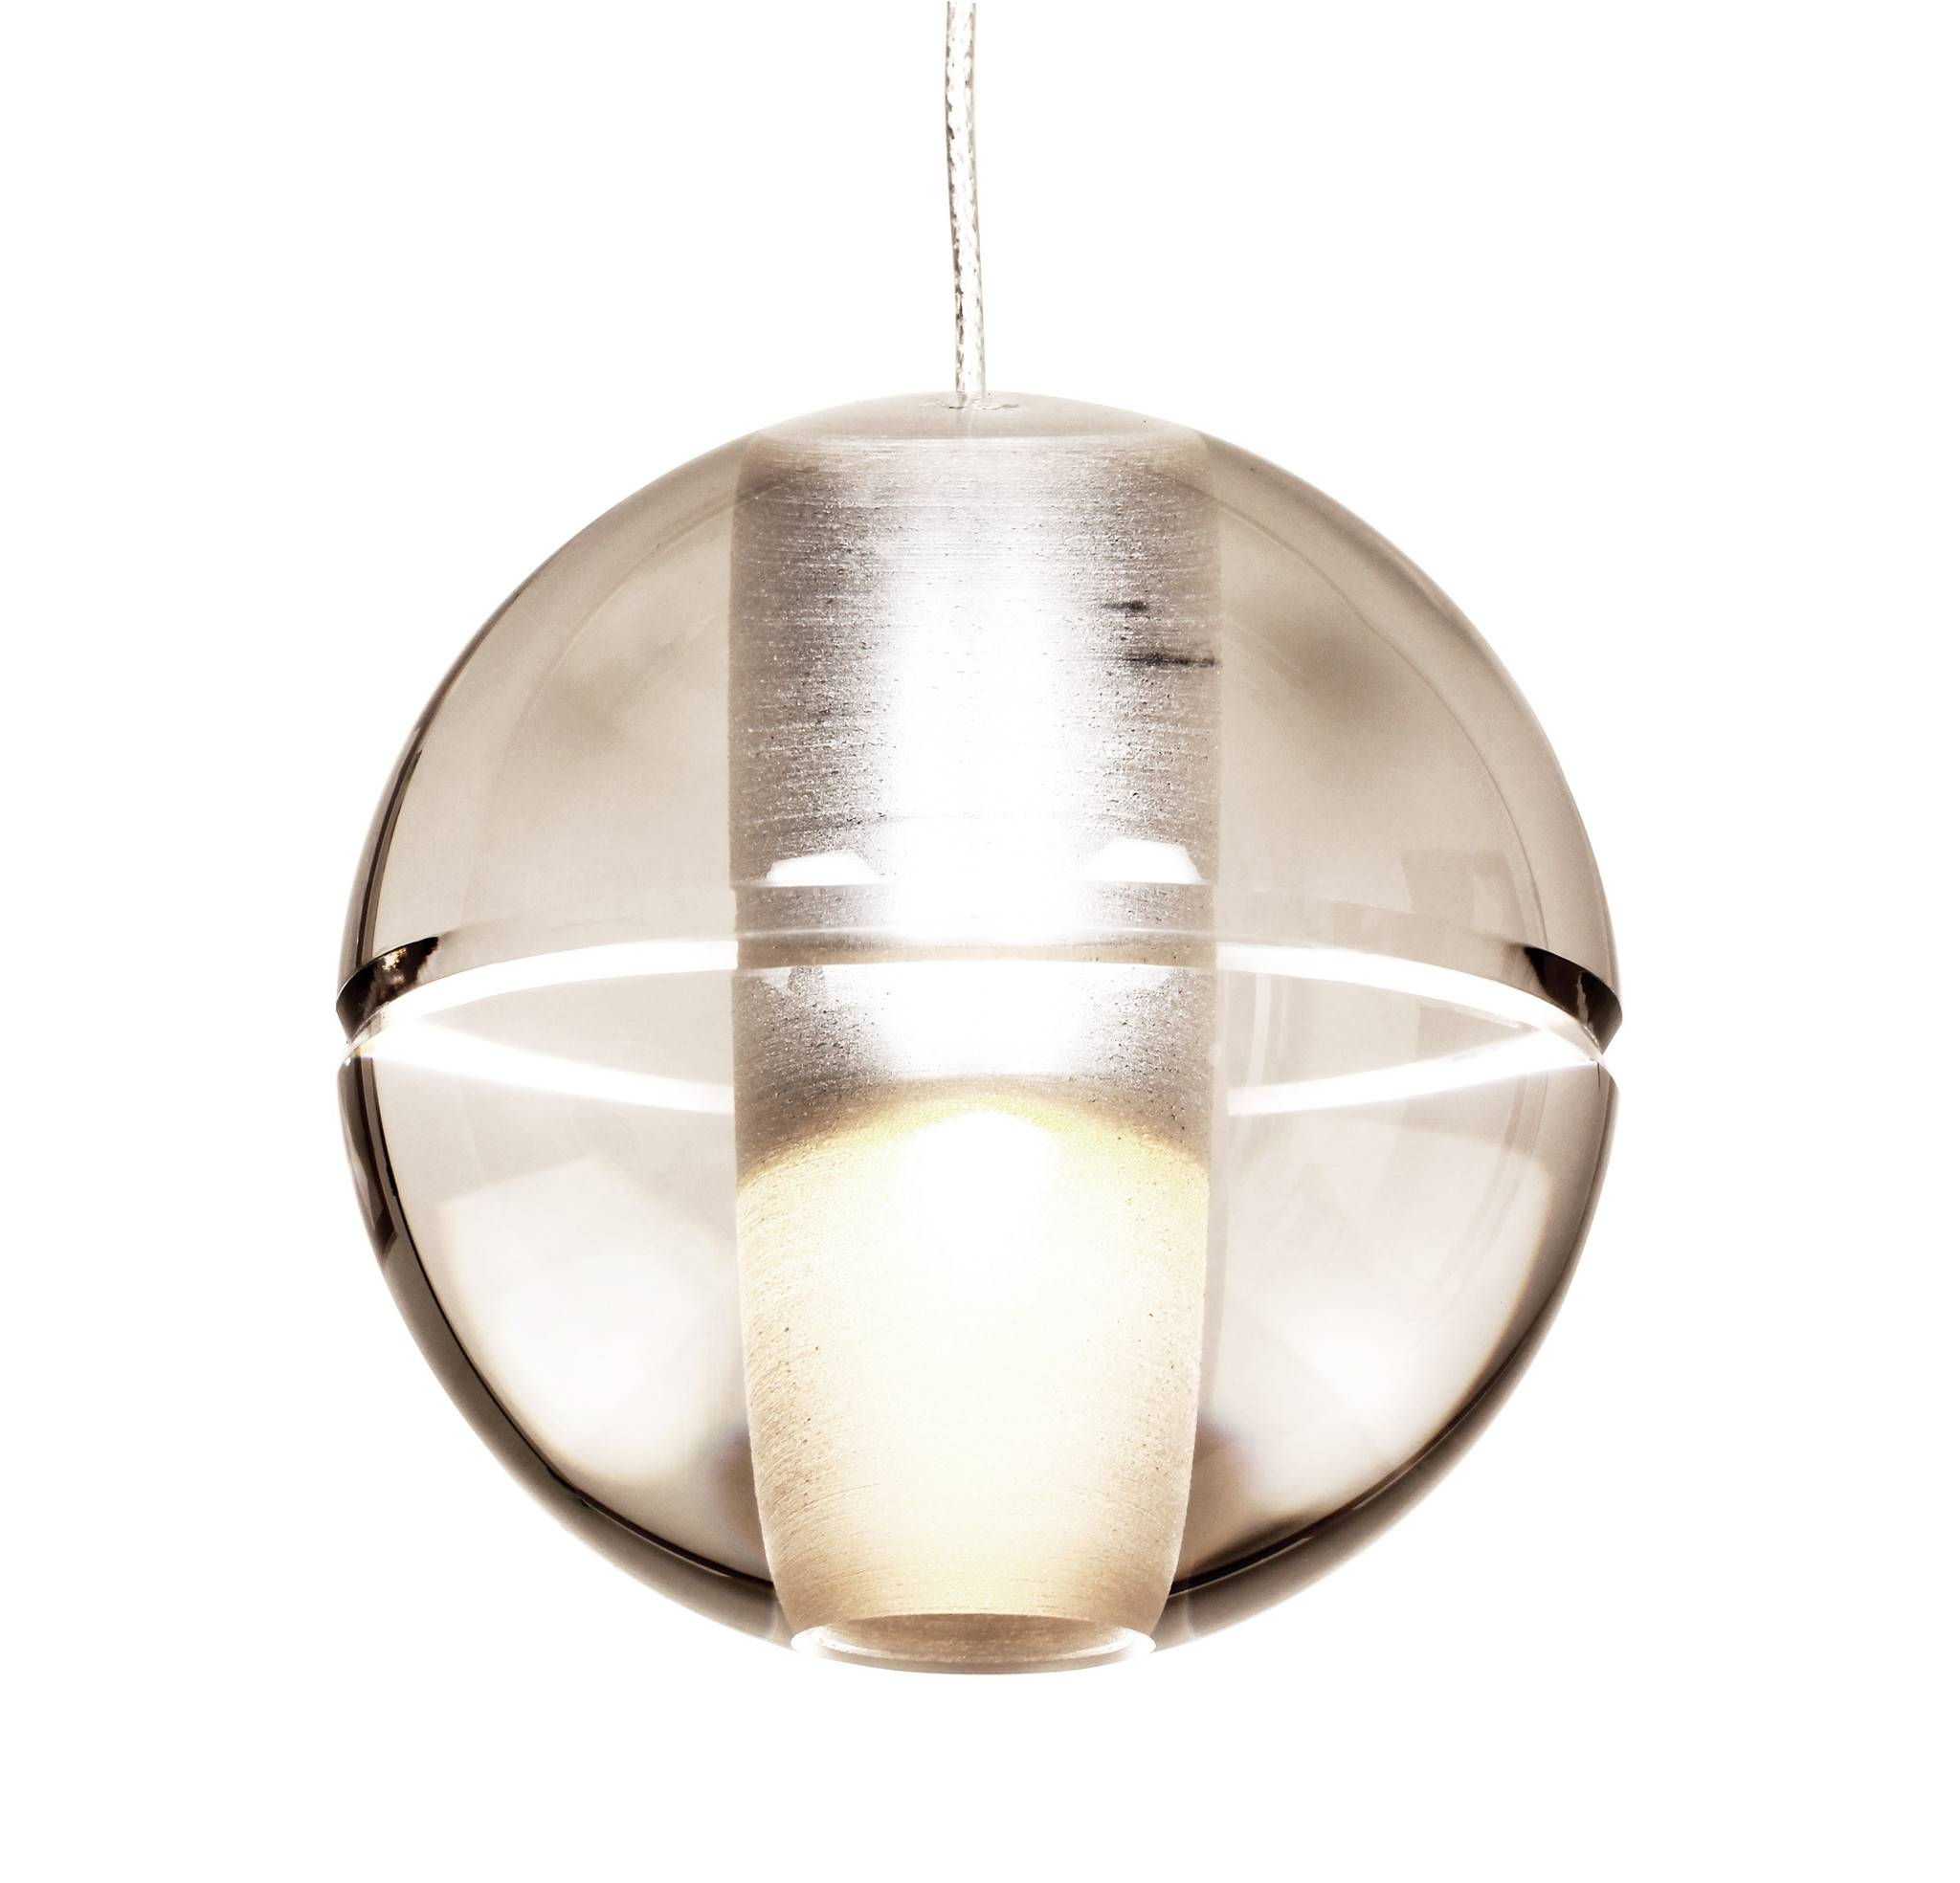 15 Collection of Blown Glass Australia Pendant Lights